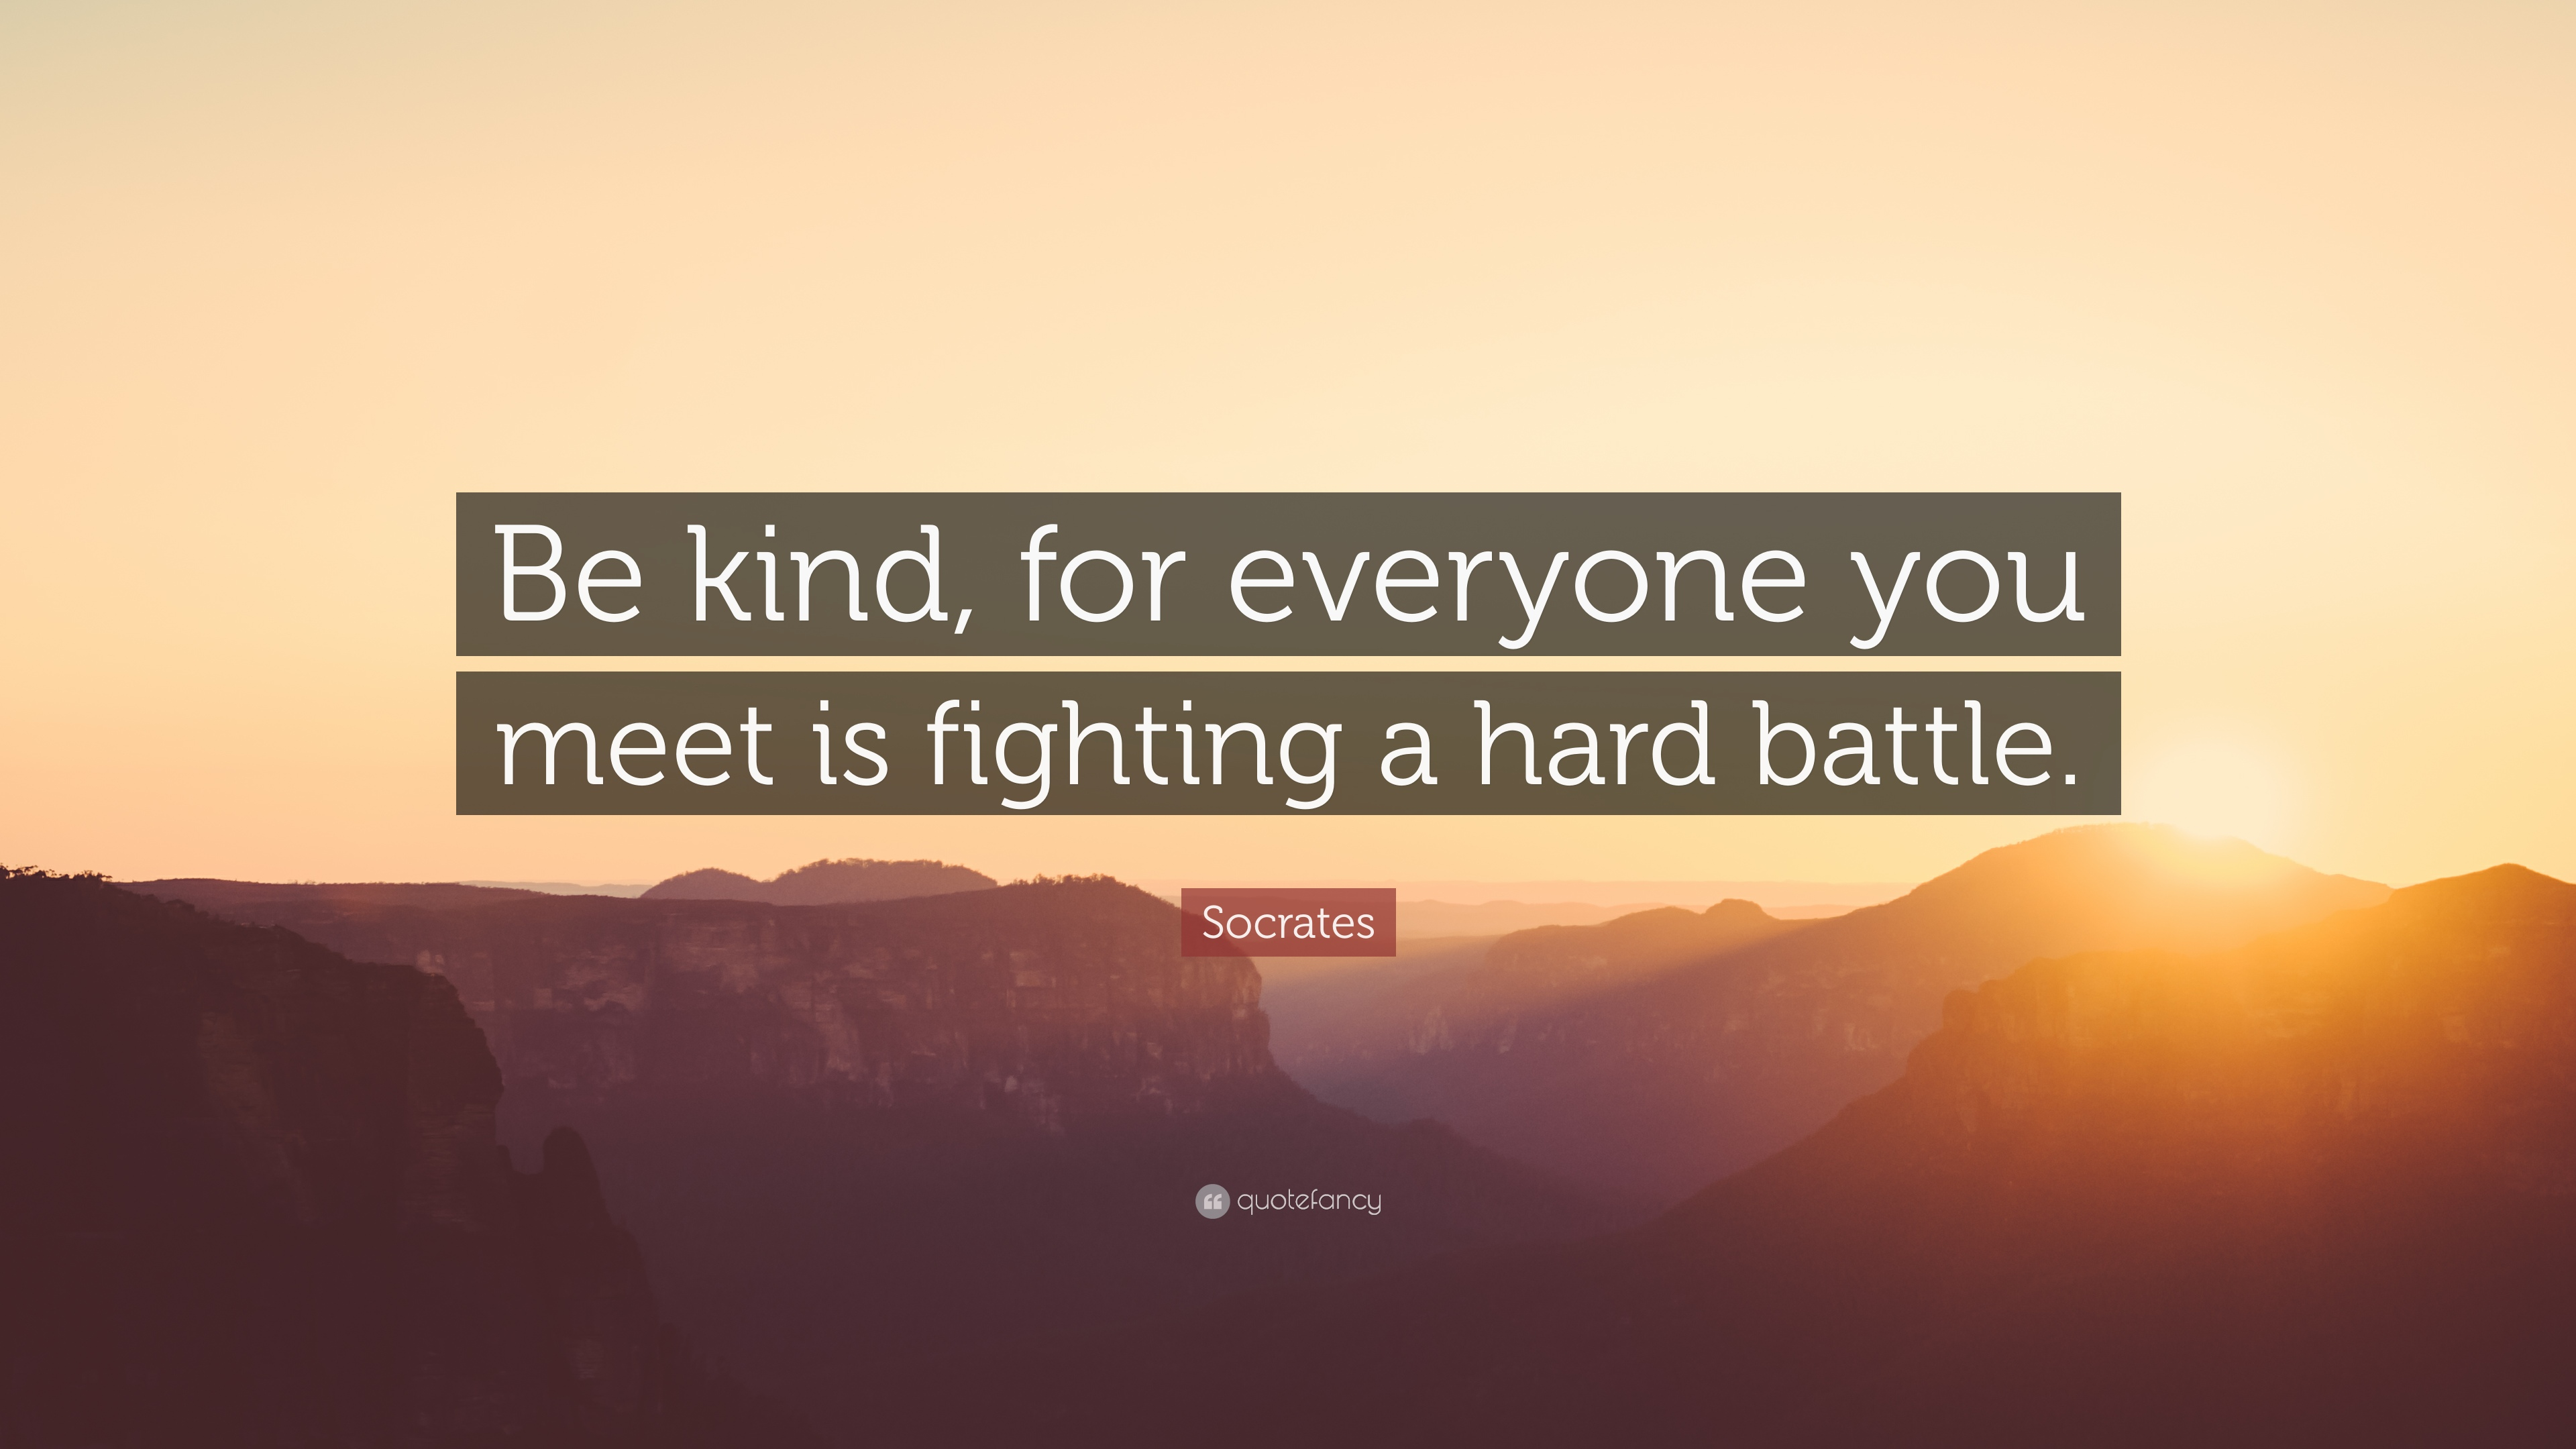 be kind for everyone you meet is fighting a hard battle images